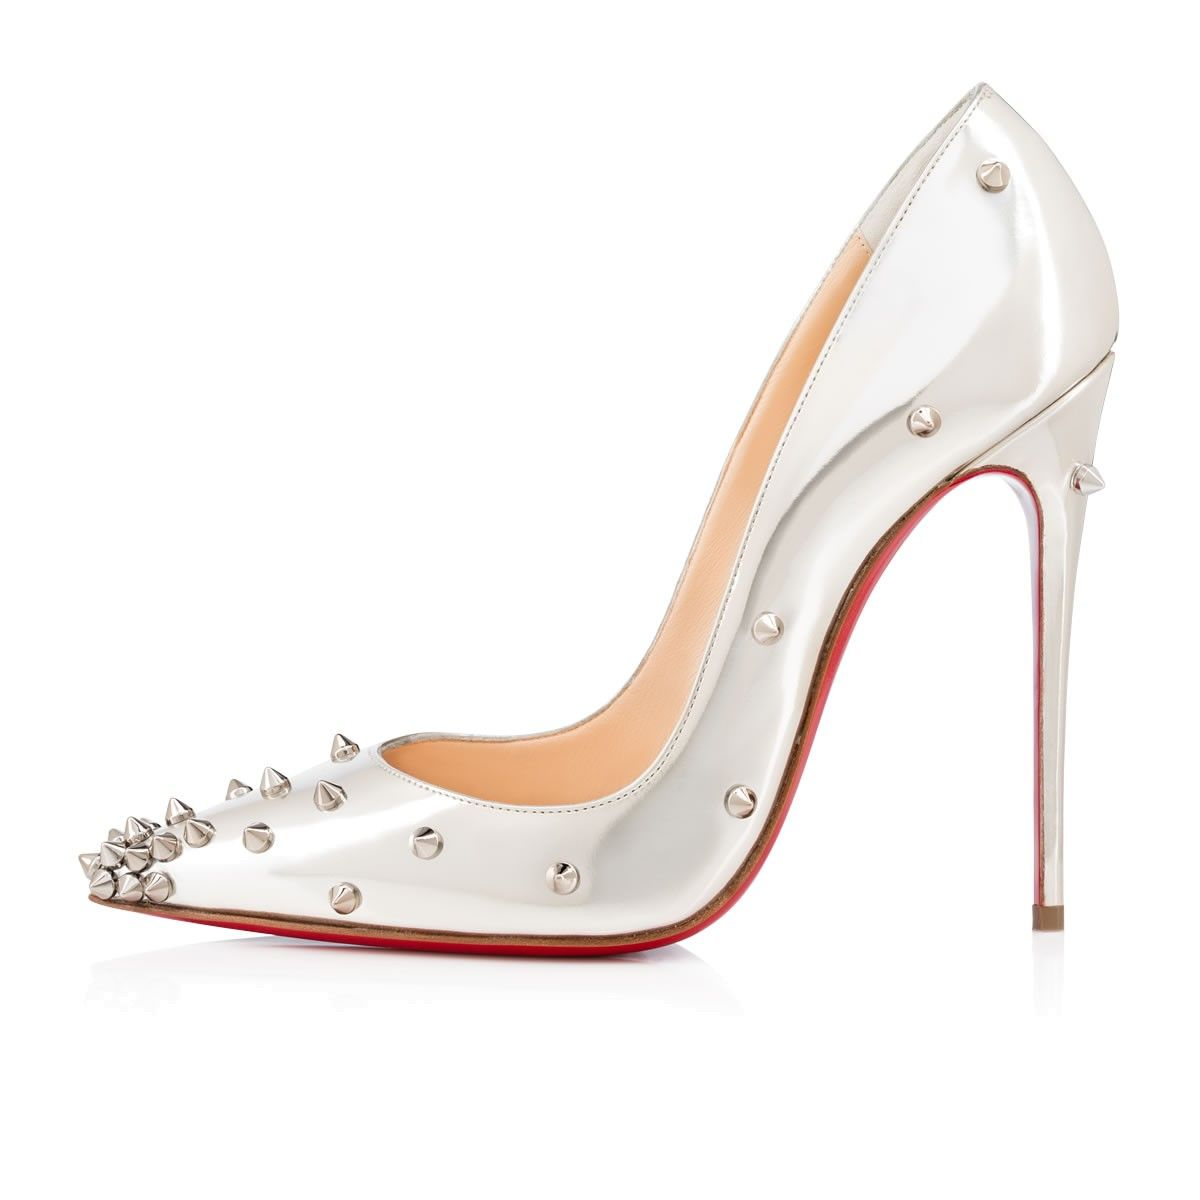 71d259ce2e4 Degraspike 120mm Beige Colombe Specchio. Shoes - Degraspike - Christian  Louboutin ...